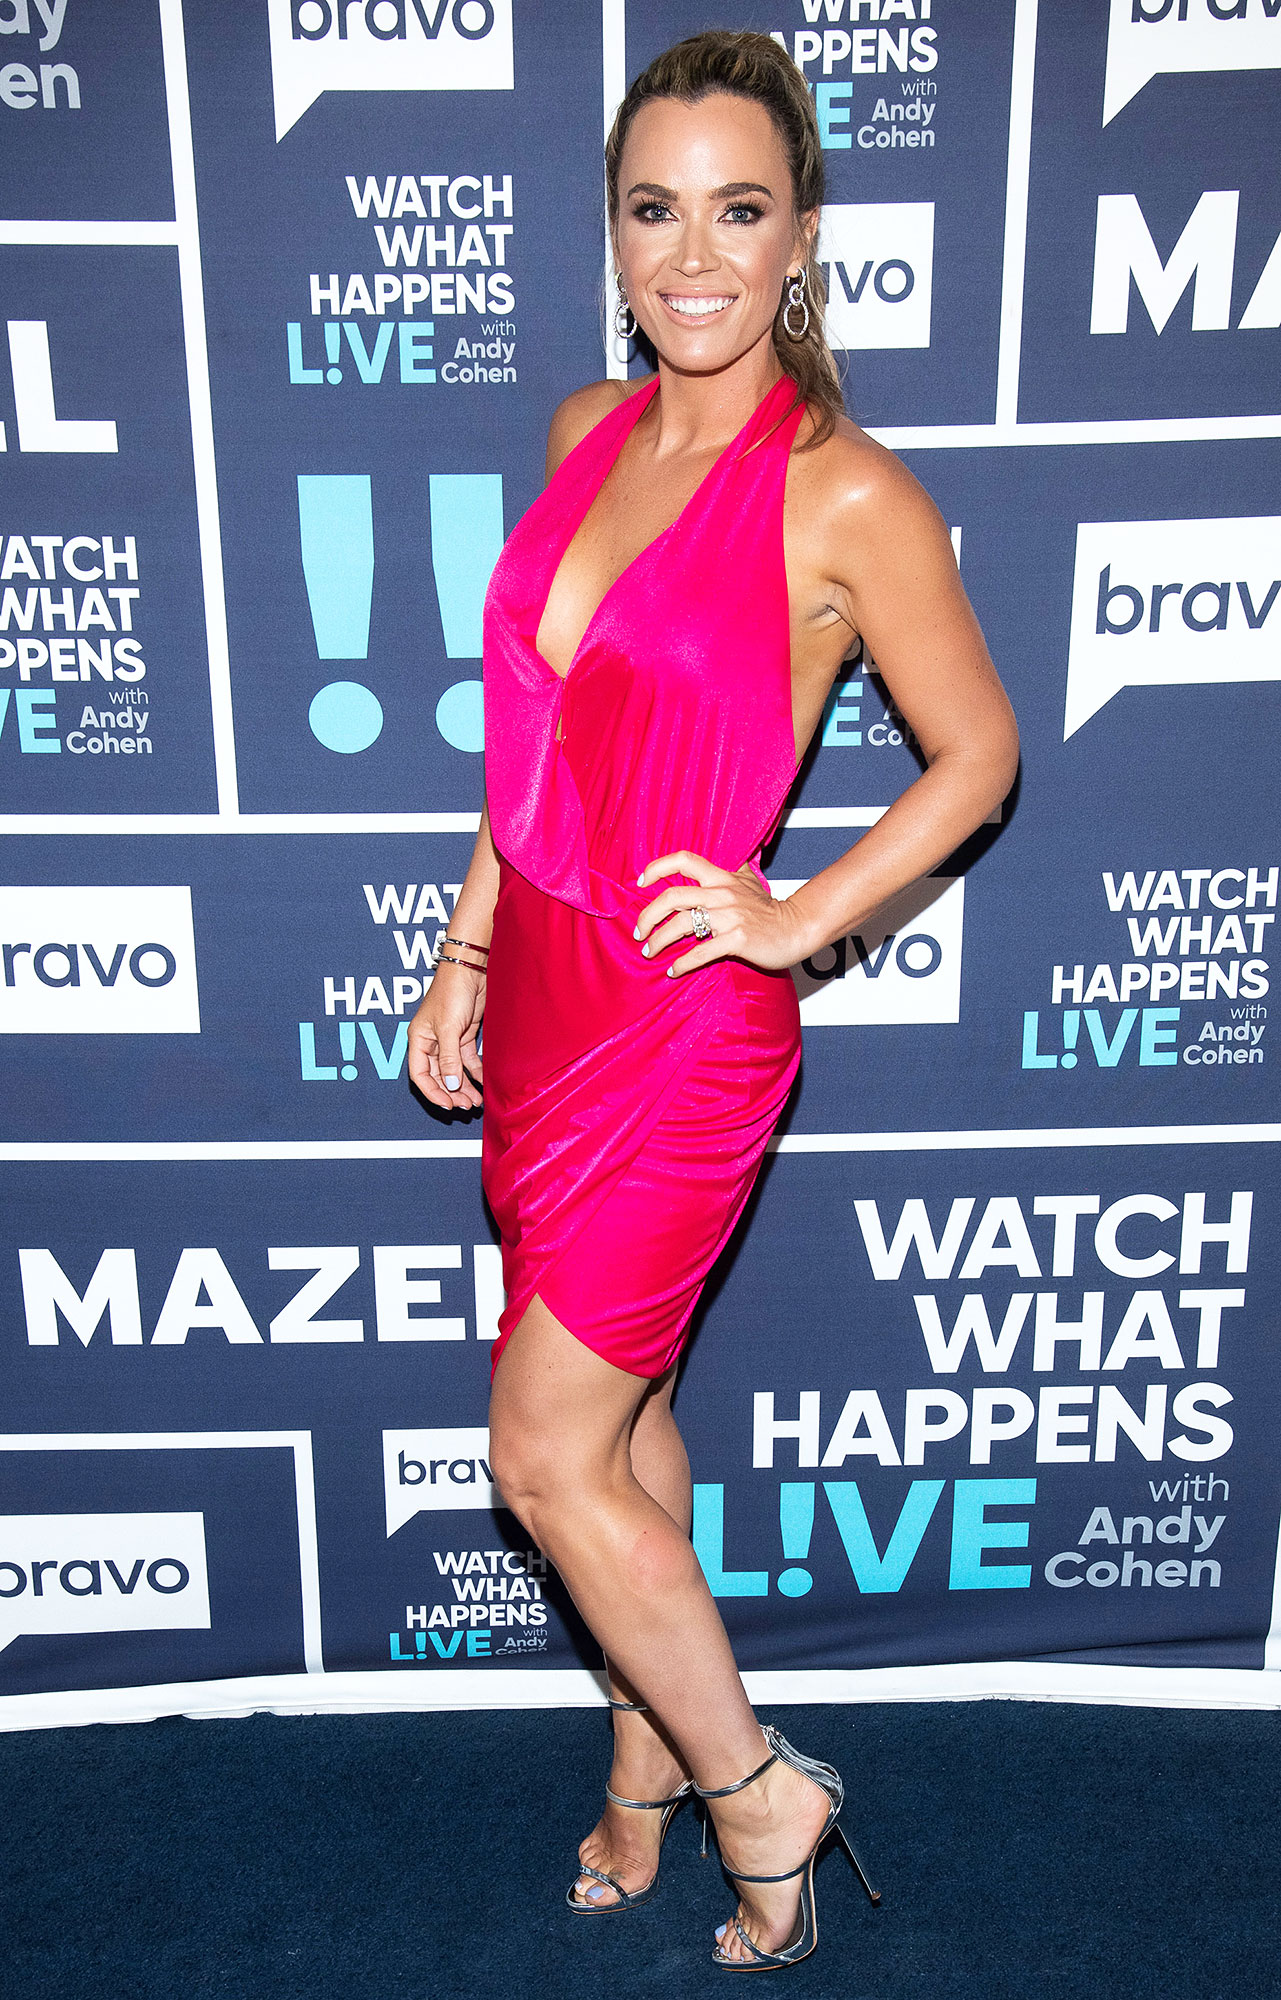 Teddi Mellencamp Wearing a Pink Dress on Watch What Happens Live Wtih Andy Cohen Body Transformation